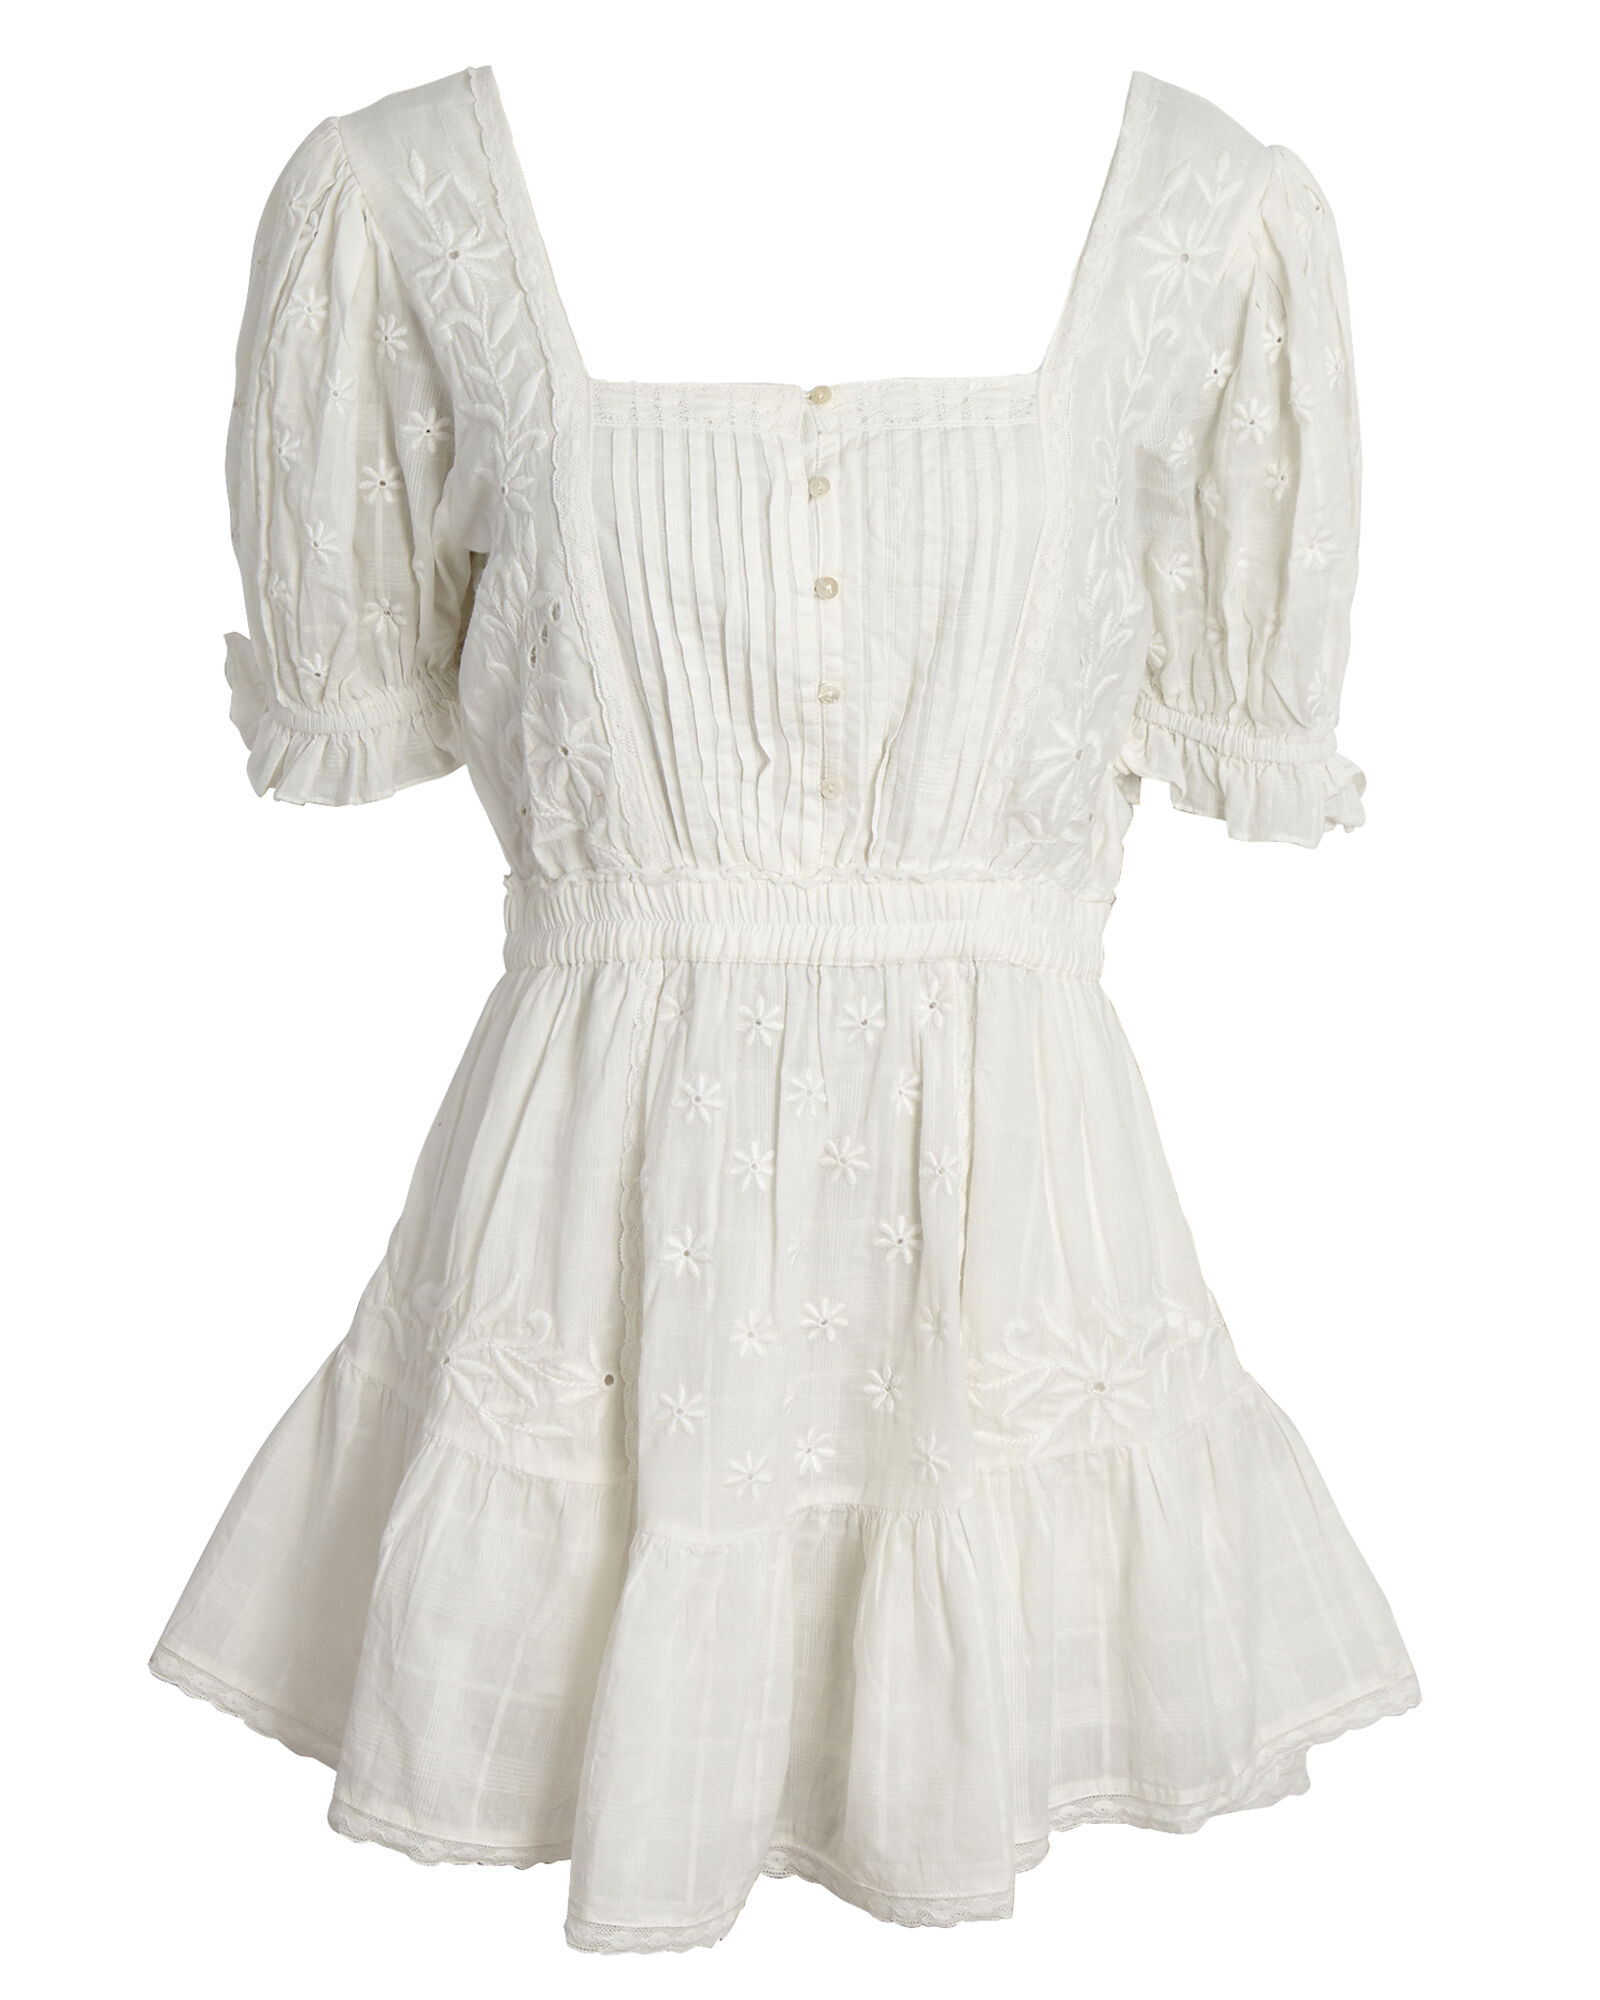 Tomasina Puff Sleeve Cotton Mini Dress, WHITE, hi-res